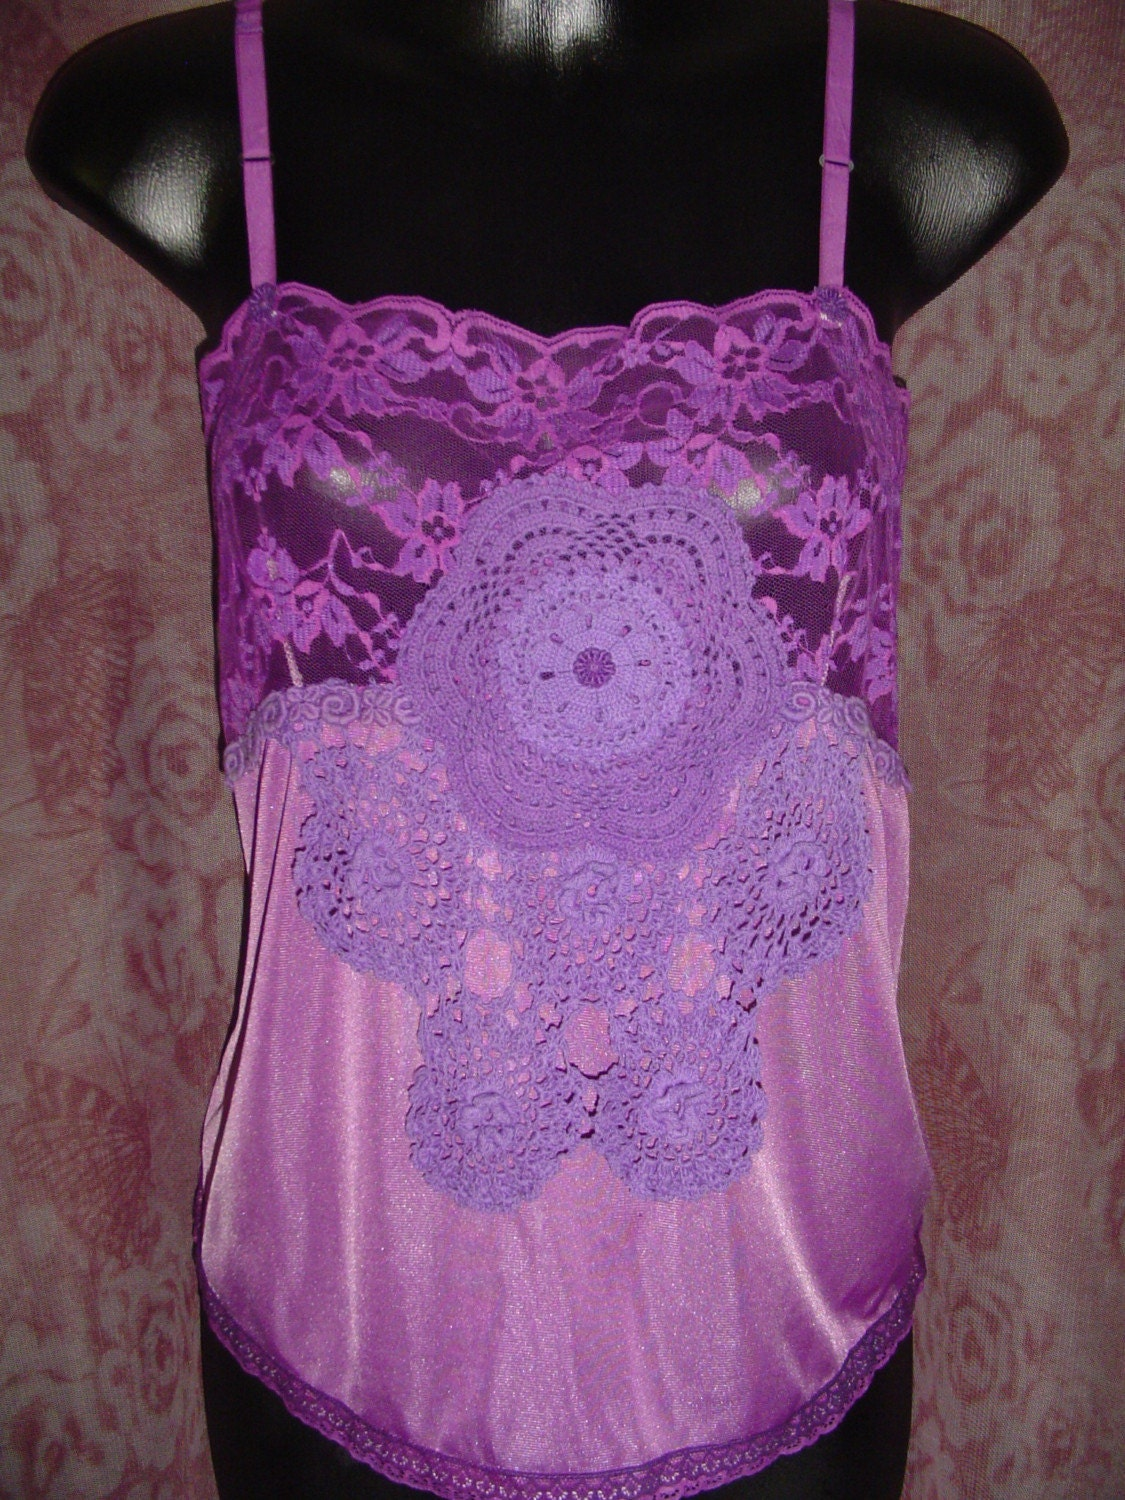 FREE SHIPPING - Purple Vintage Camisole Slip Top